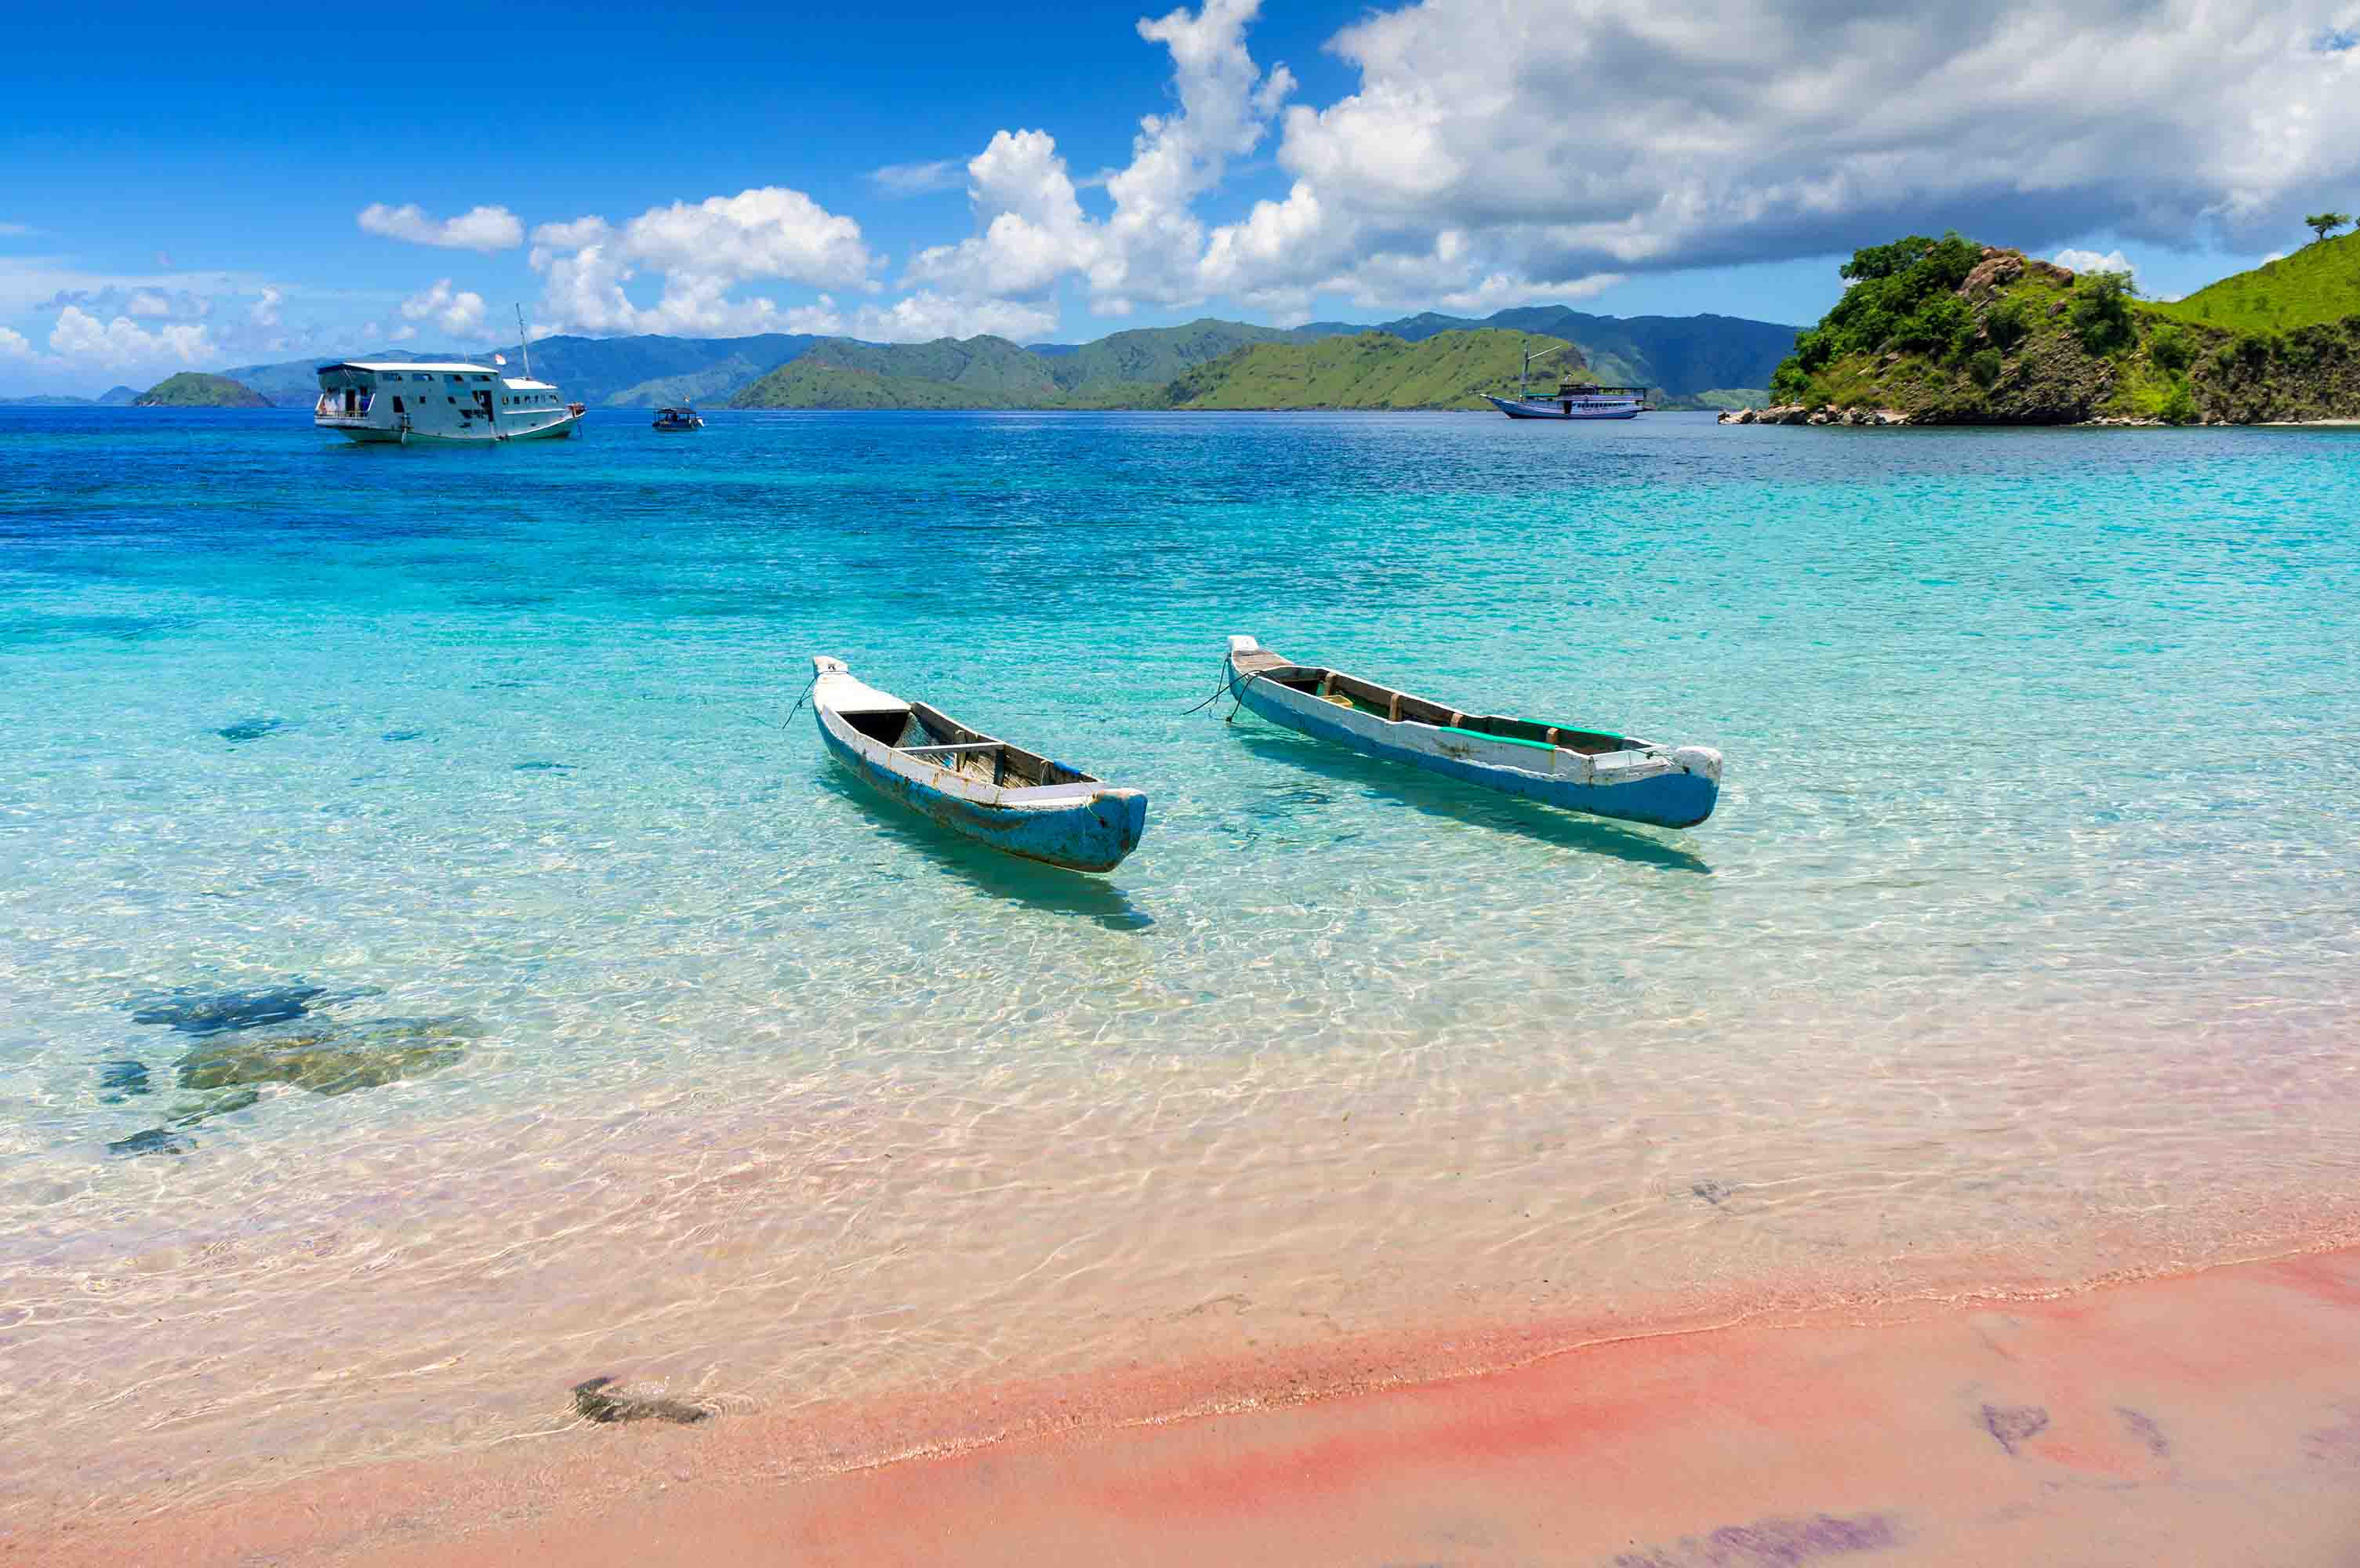 10 THINGS TO DO IN LABUAN BAJO